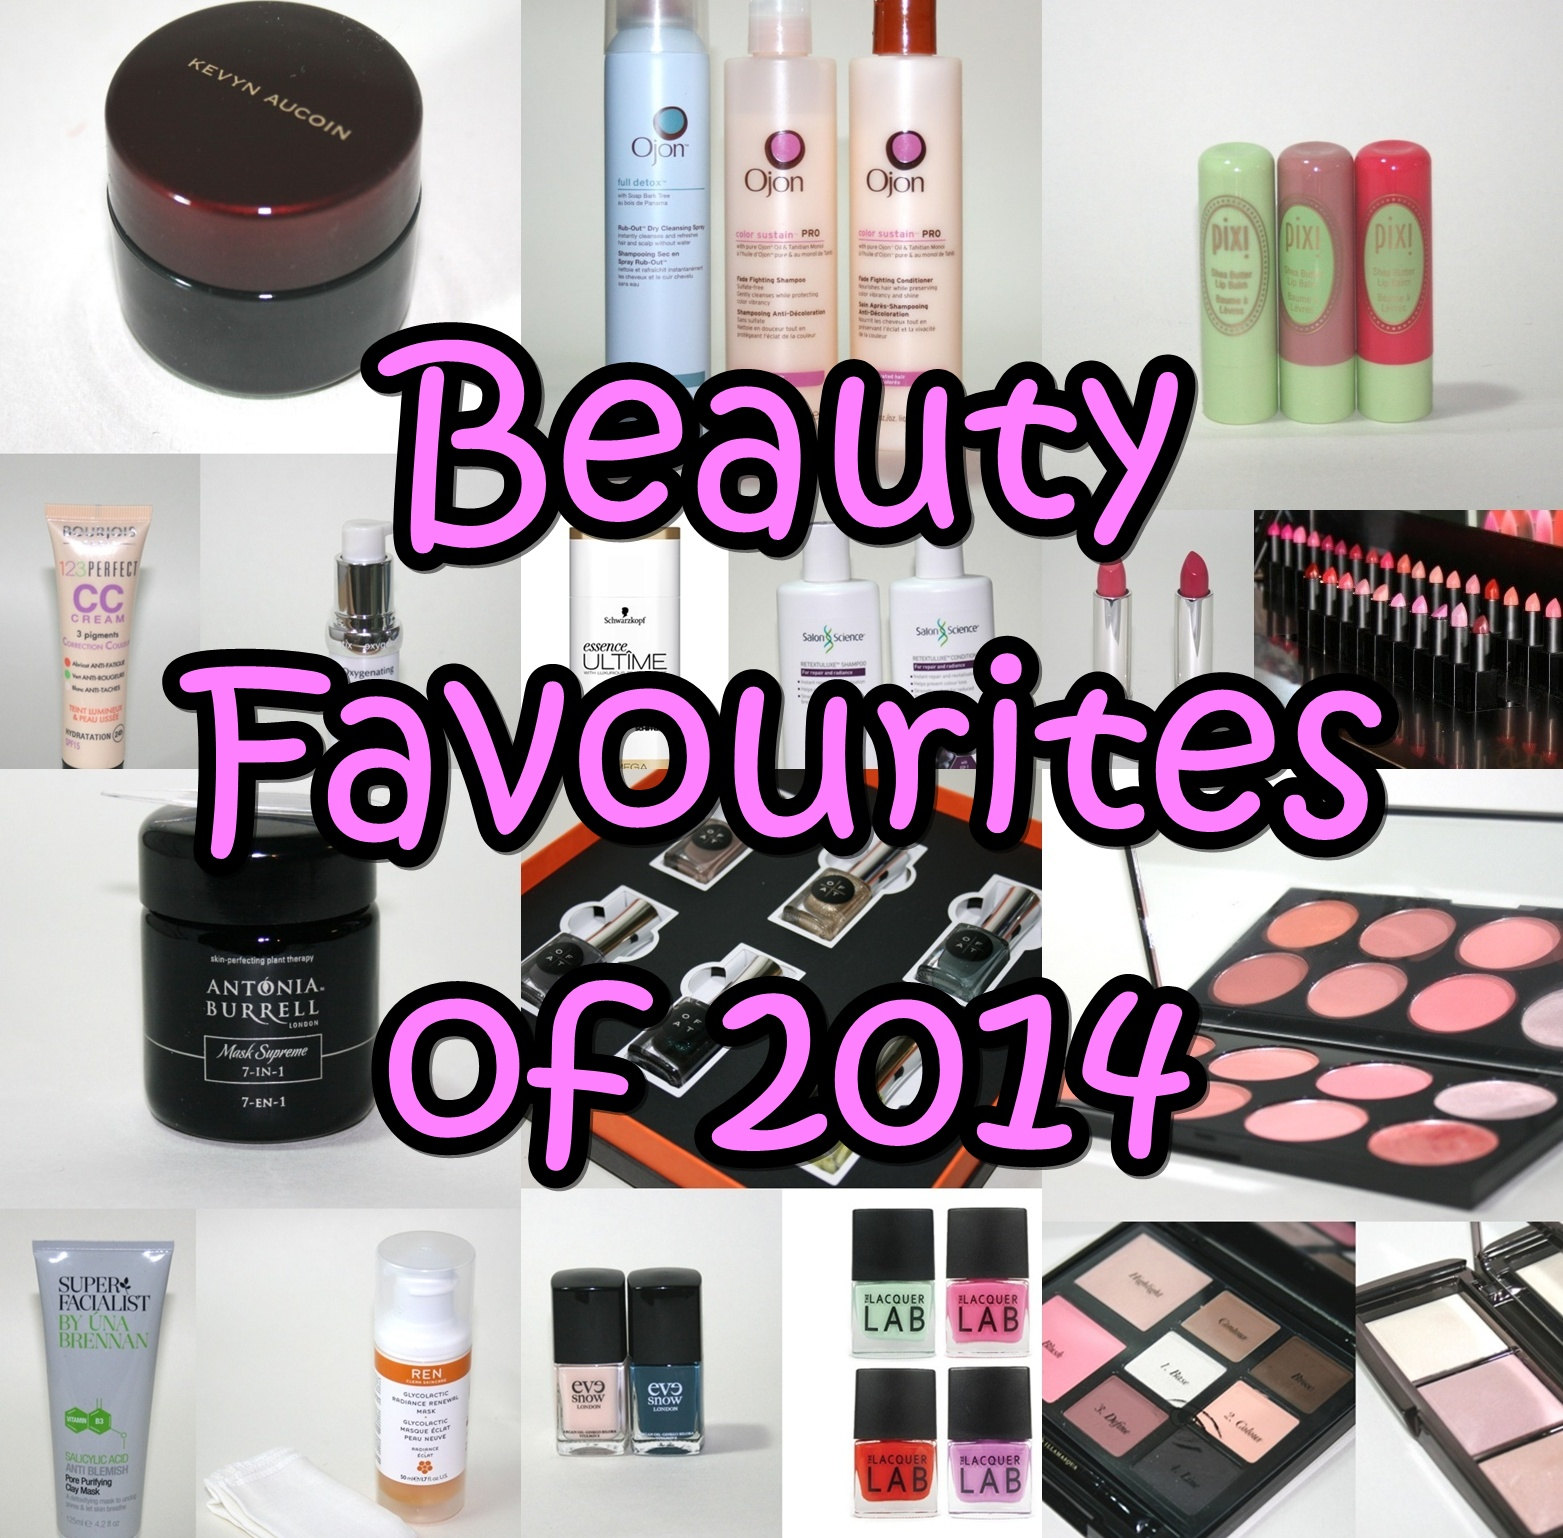 Favourite Beauty Products of 2014